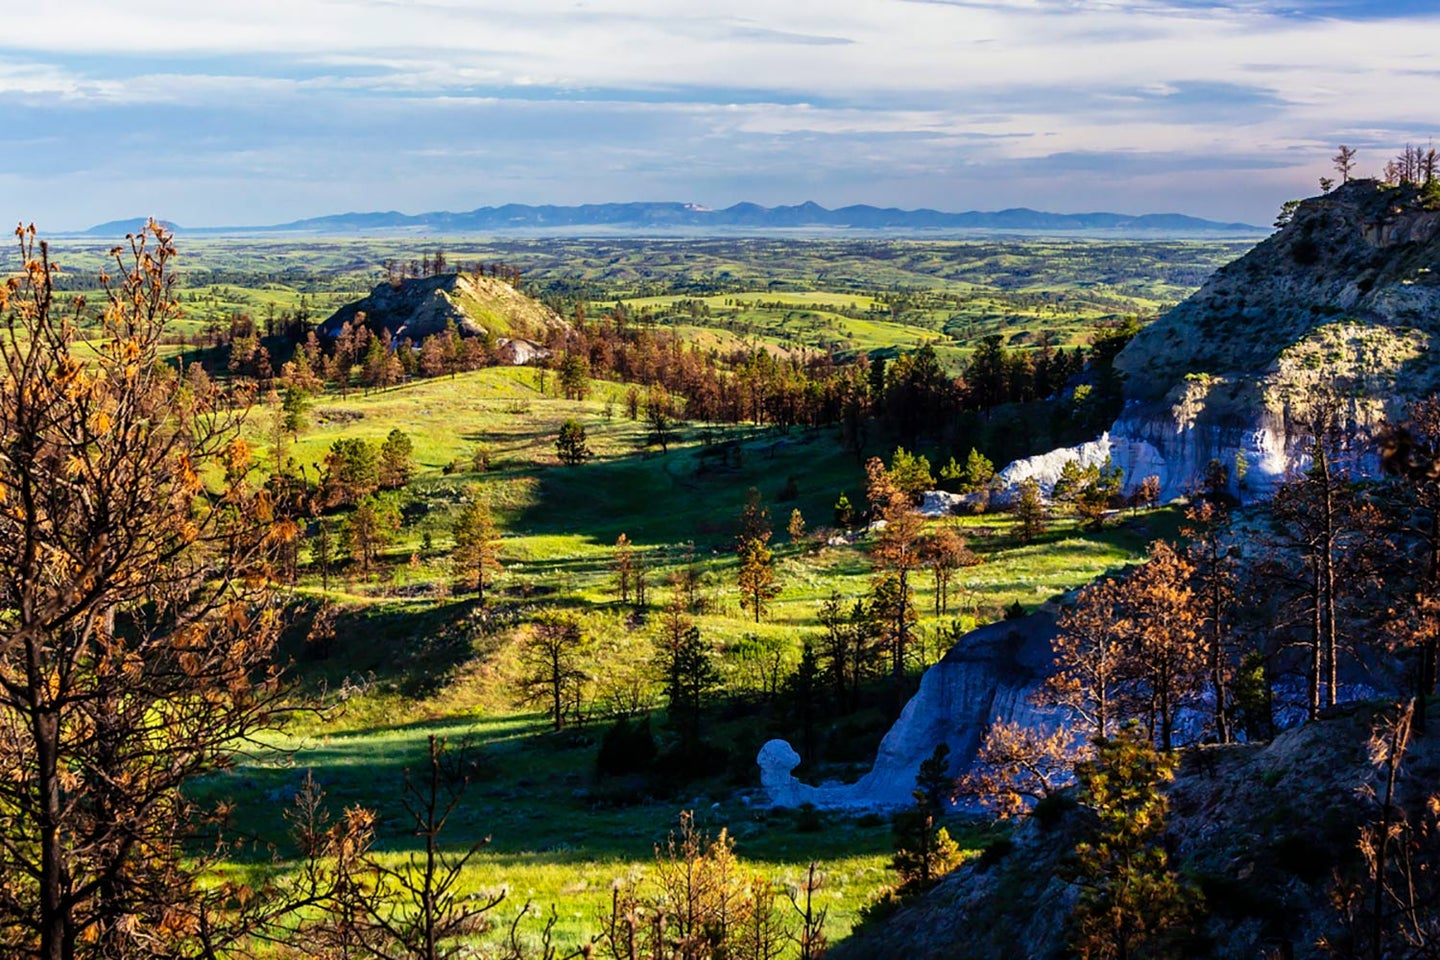 A new Backcountry Conservation Area is being proposed near Lewistown, Montana.